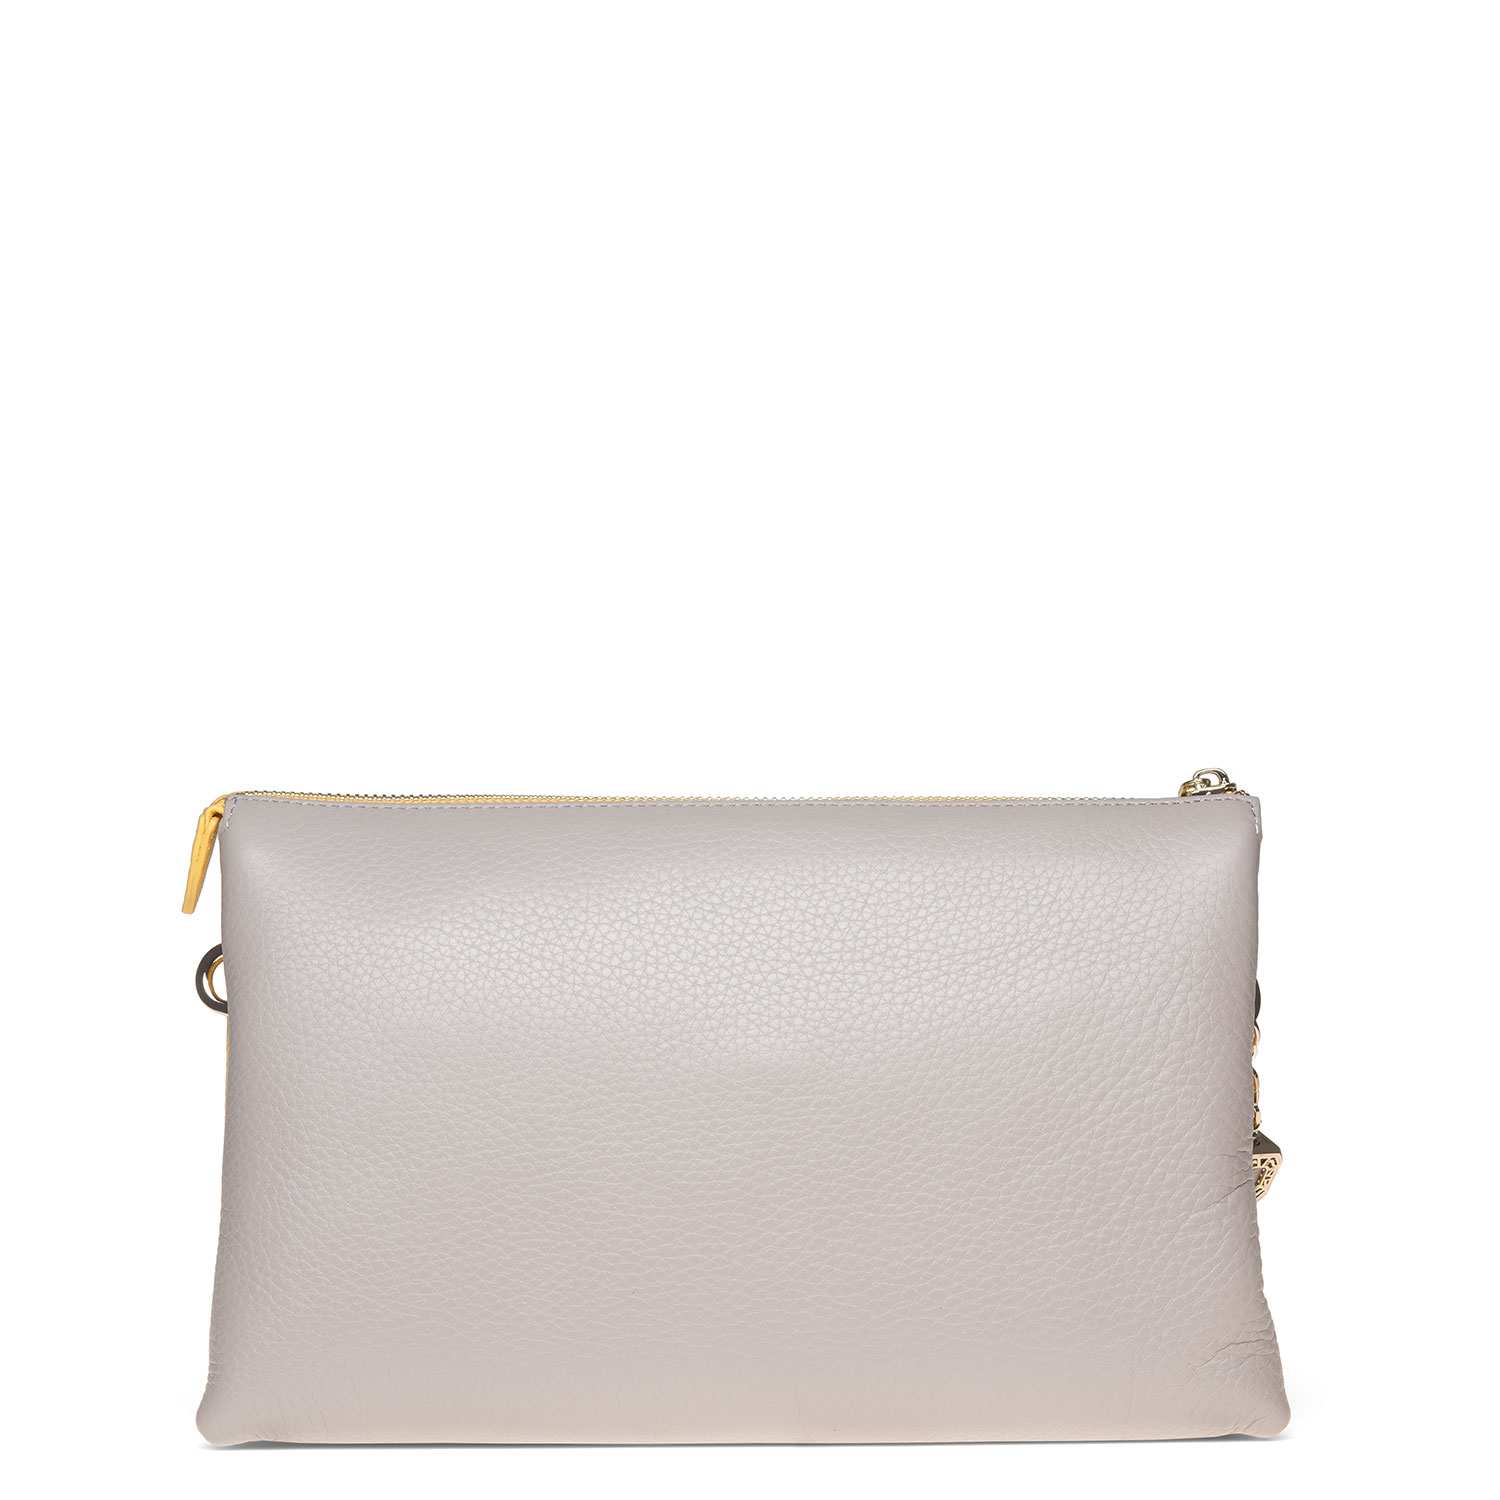 Women's bag PAZOLINI BS-N2882-13